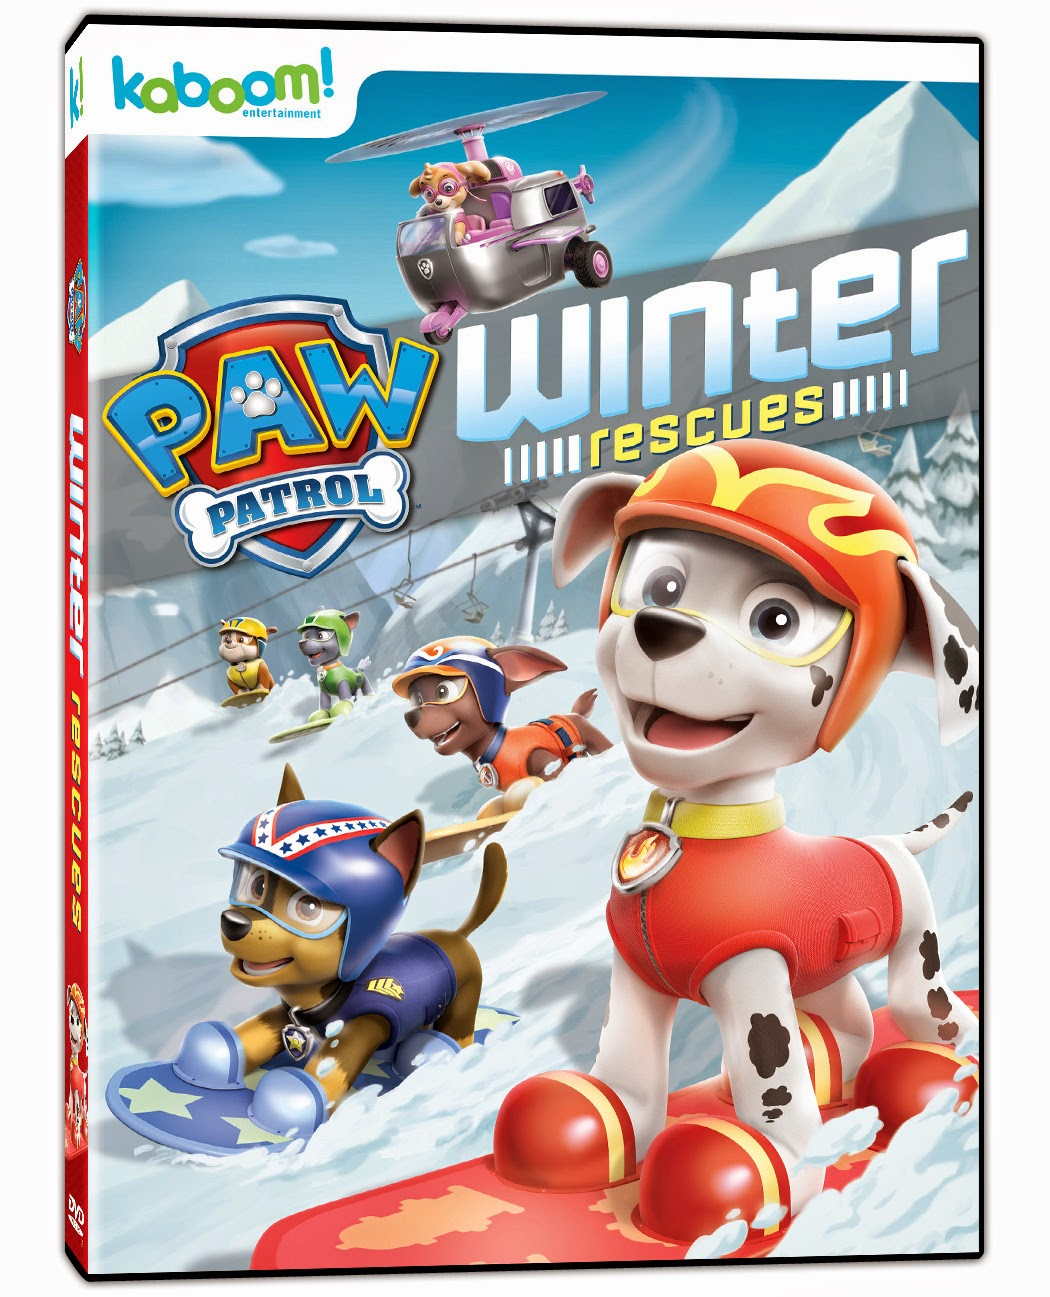 yyz bambina paw patrol winter rescues now on dvd review giveaway